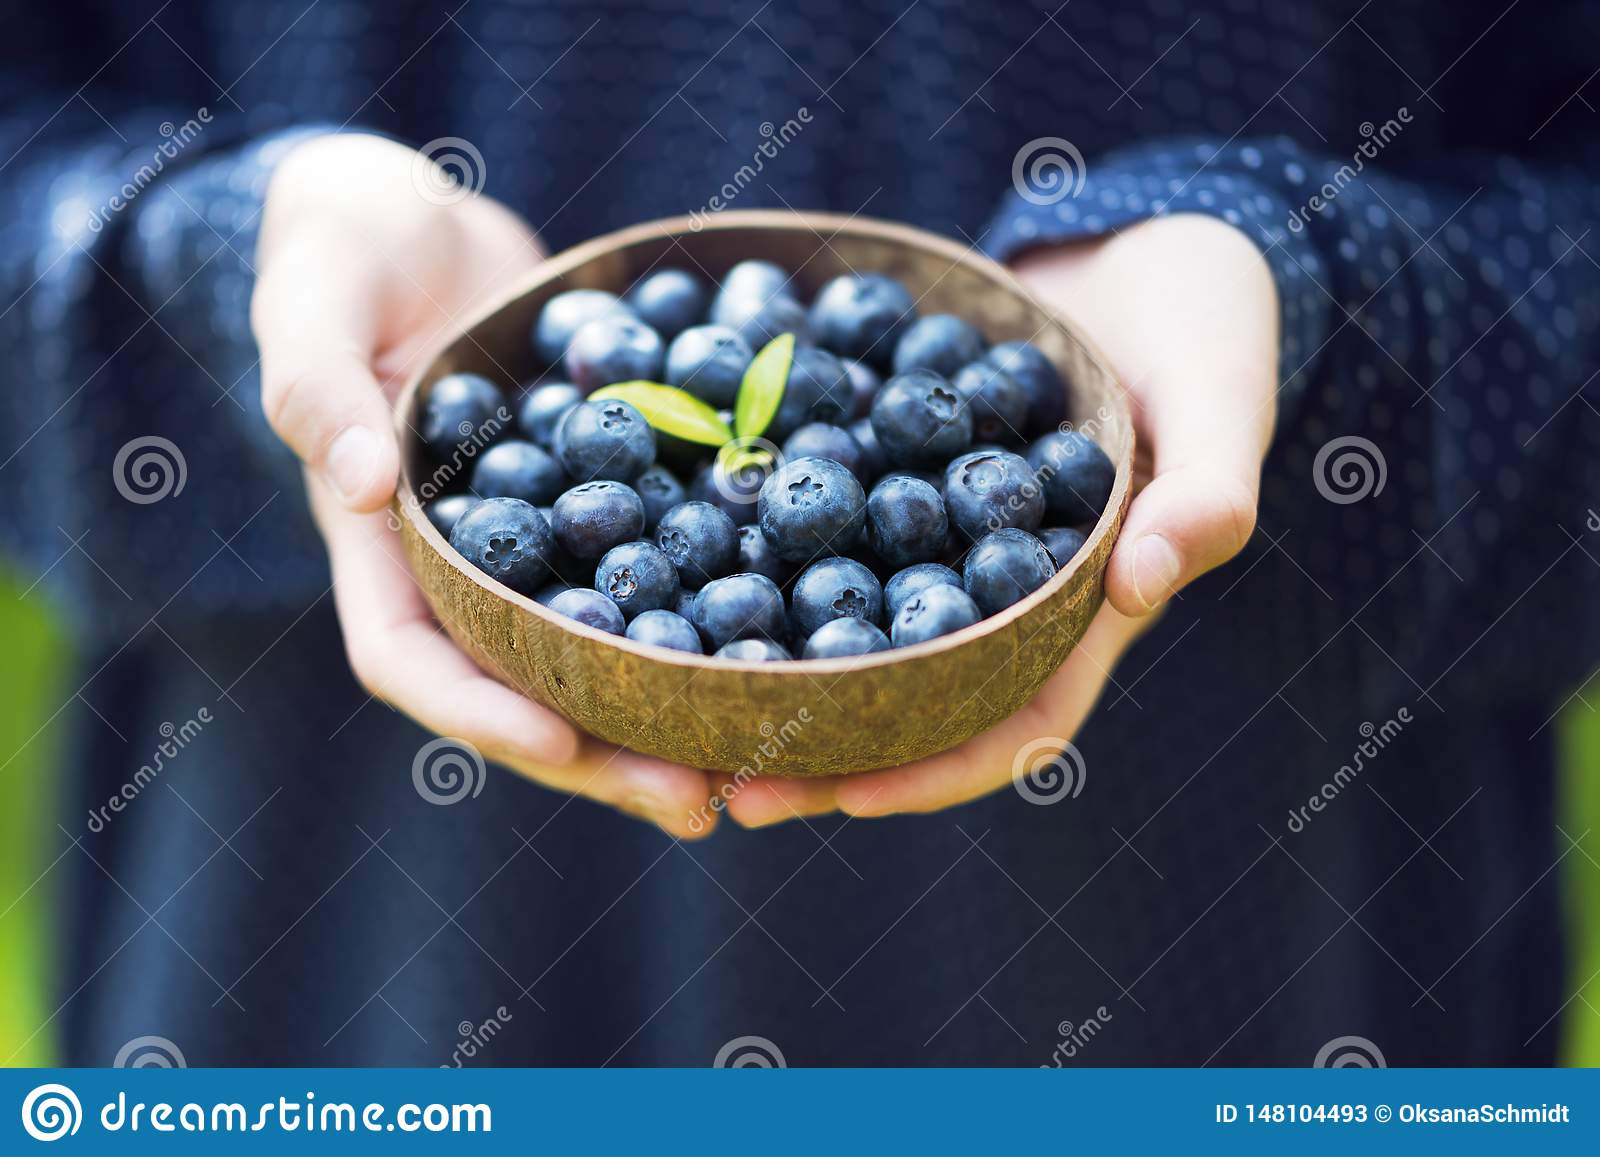 Young girl's hands holding a bowl with fresh ripe blueberries.